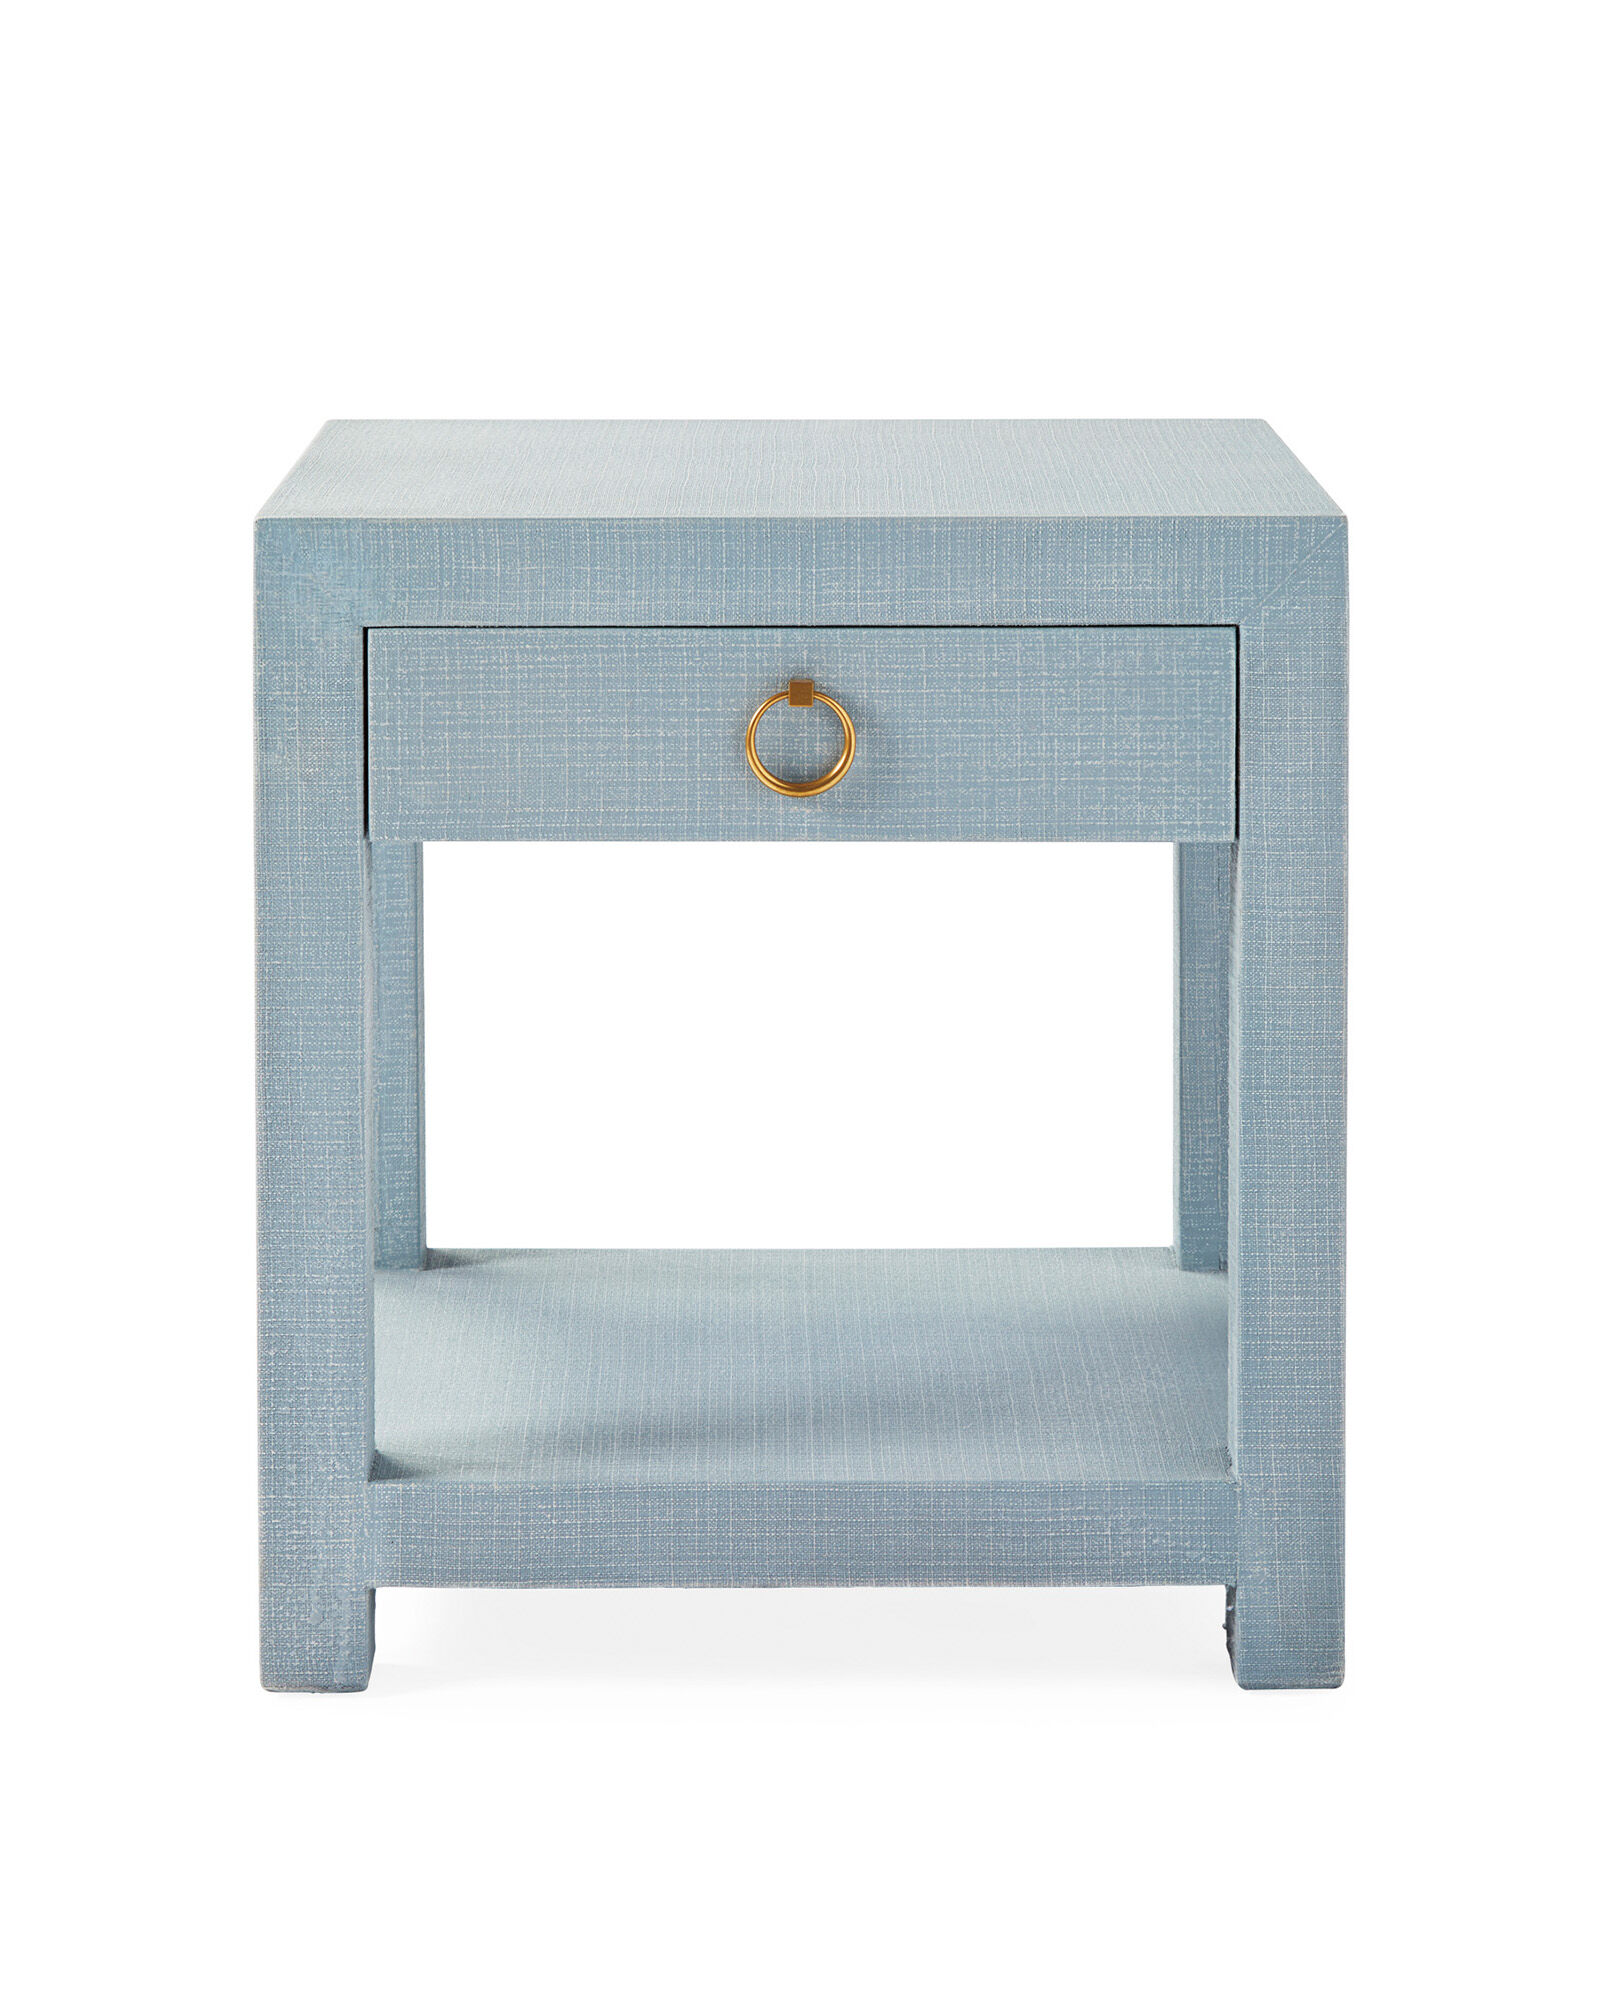 Driftway 1-Drawer Nightstand, Coastal Blue